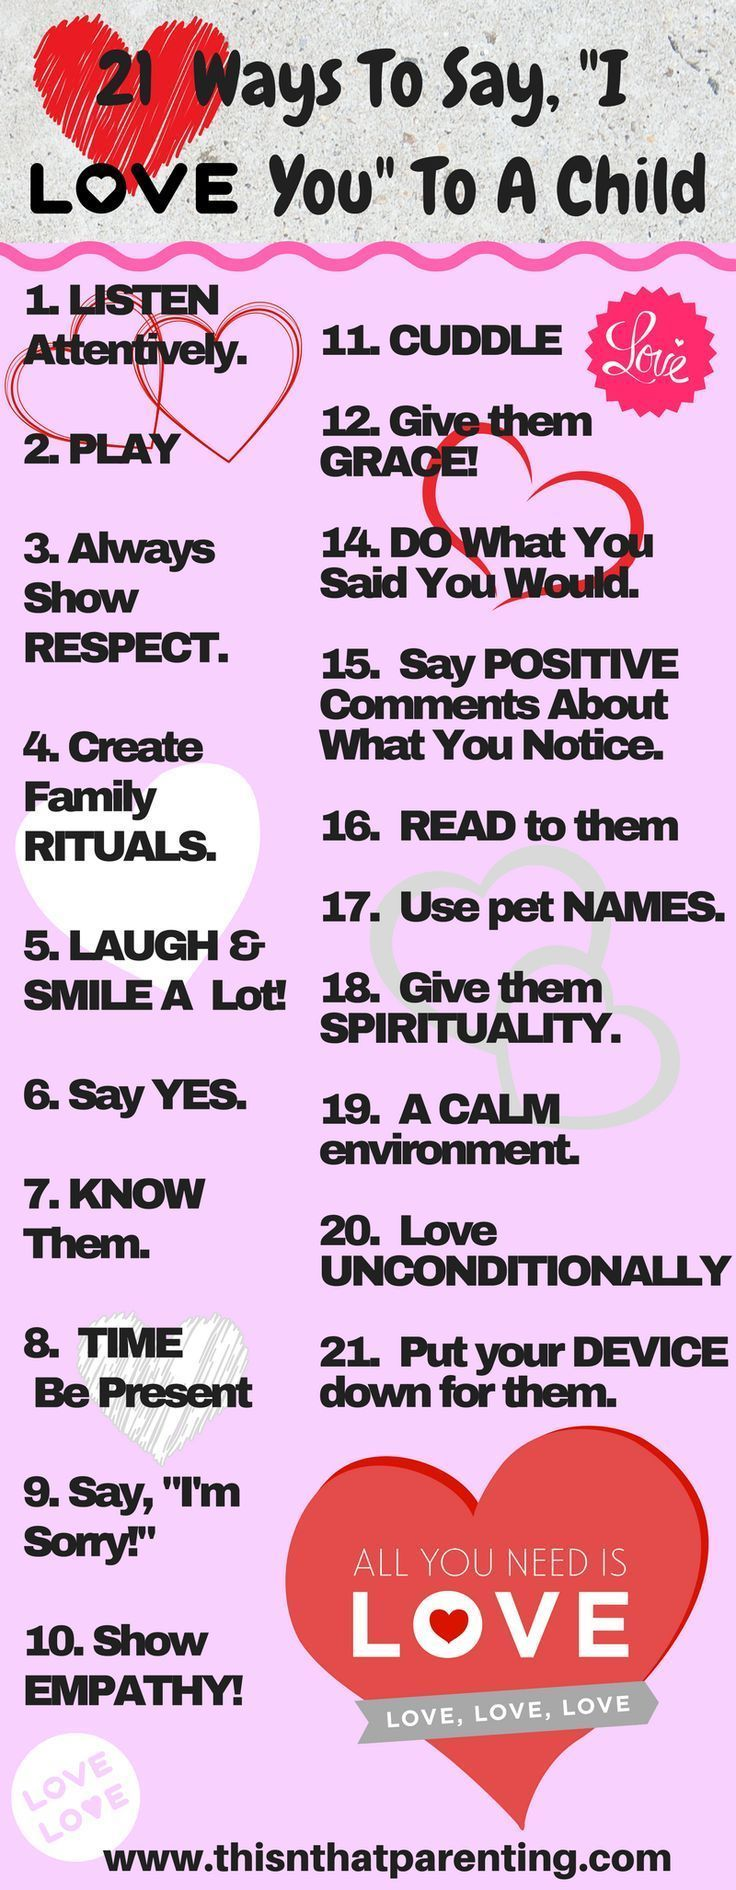 21 Ways To Say I Love You To Your Child Good Parenting Kids Parenting Smart Parenting